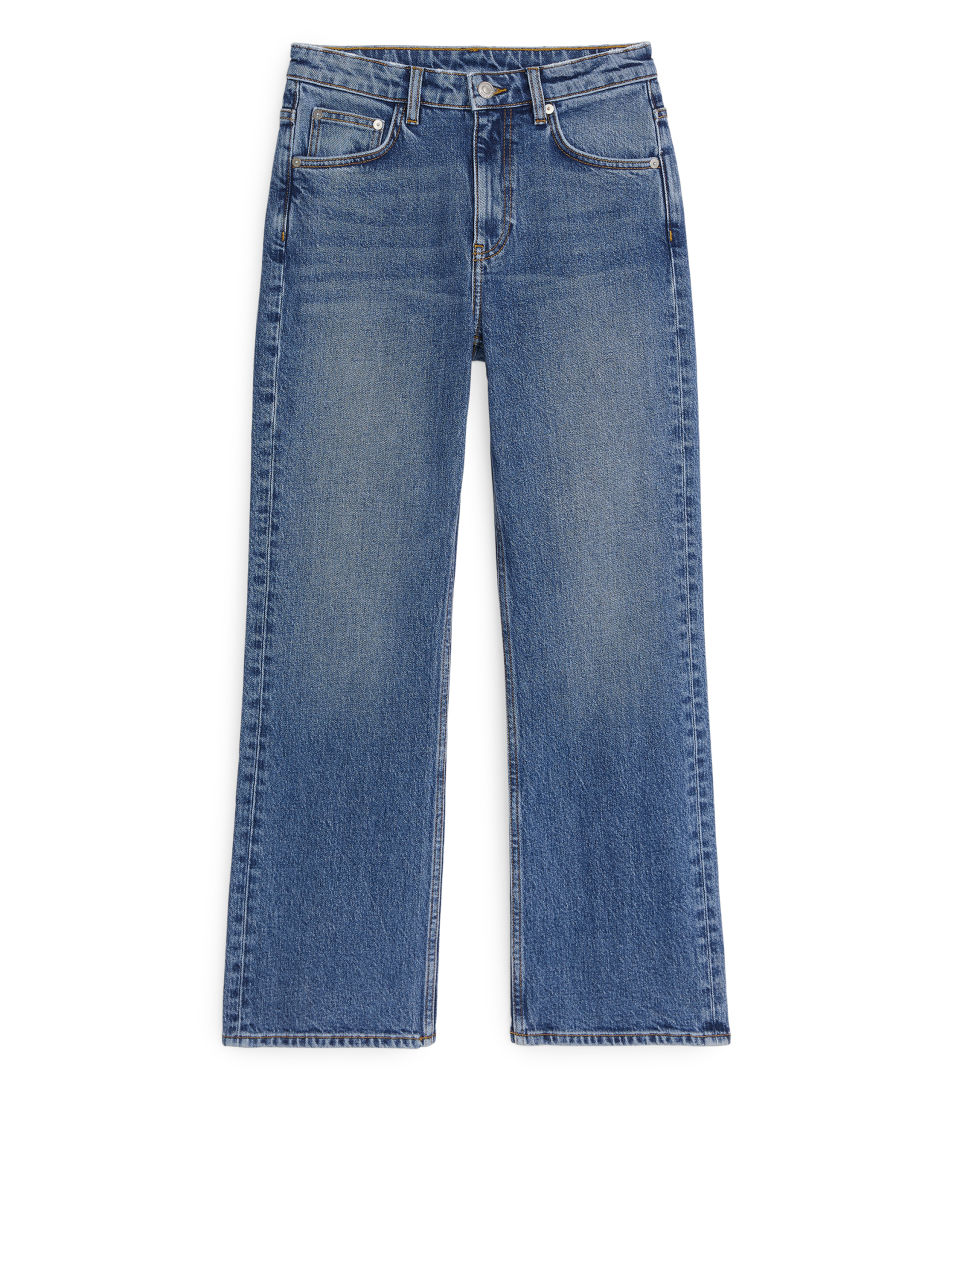 FLARED CROPPED STRETCH Jeans - Blue